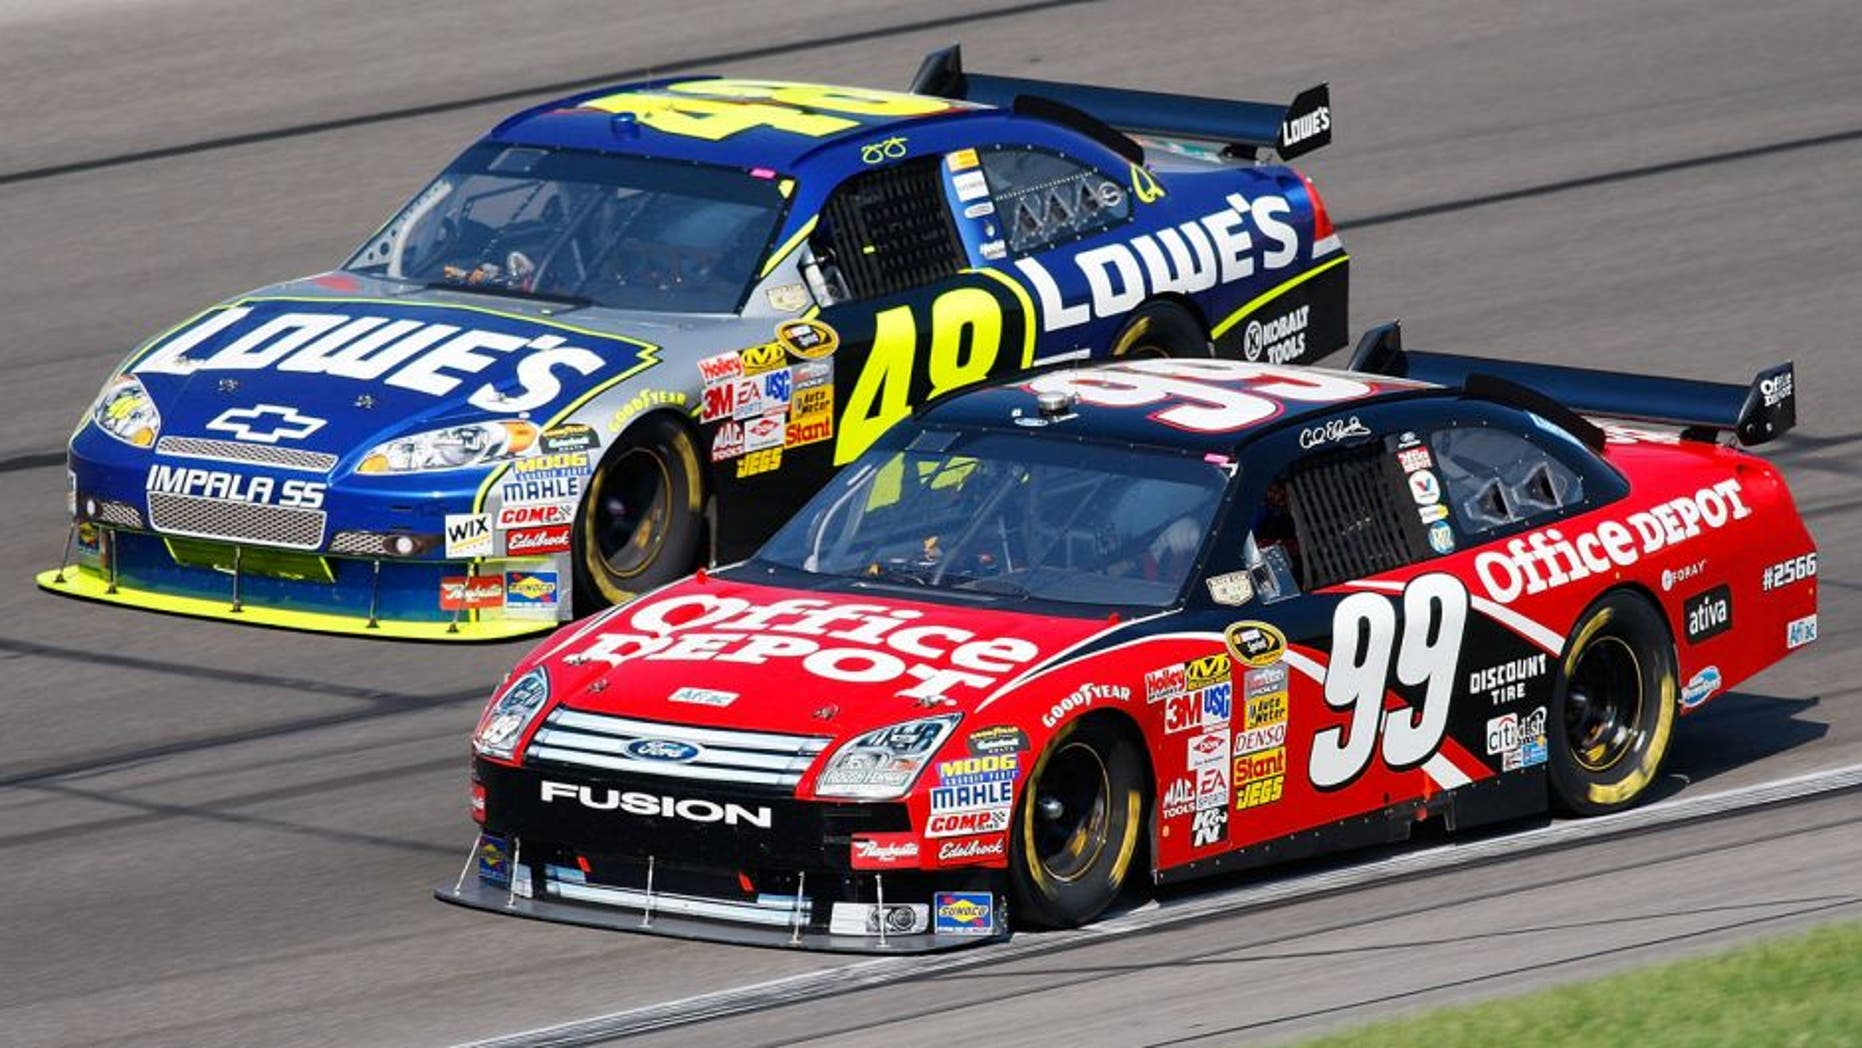 KANSAS CITY, KS - SEPTEMBER 28: Carl Edwards, driver of the #99 Office Depot Ford, and Jimmie Johnson, driver of the #48 Lowe's Chevrolet, drive during the NASCAR Sprint Cup Series Camping World RV 400 at Kansas Speedway on September 28, 2008 in Kansas City, Kansas. (Photo by John Harrelson/Getty Images for NASCAR)